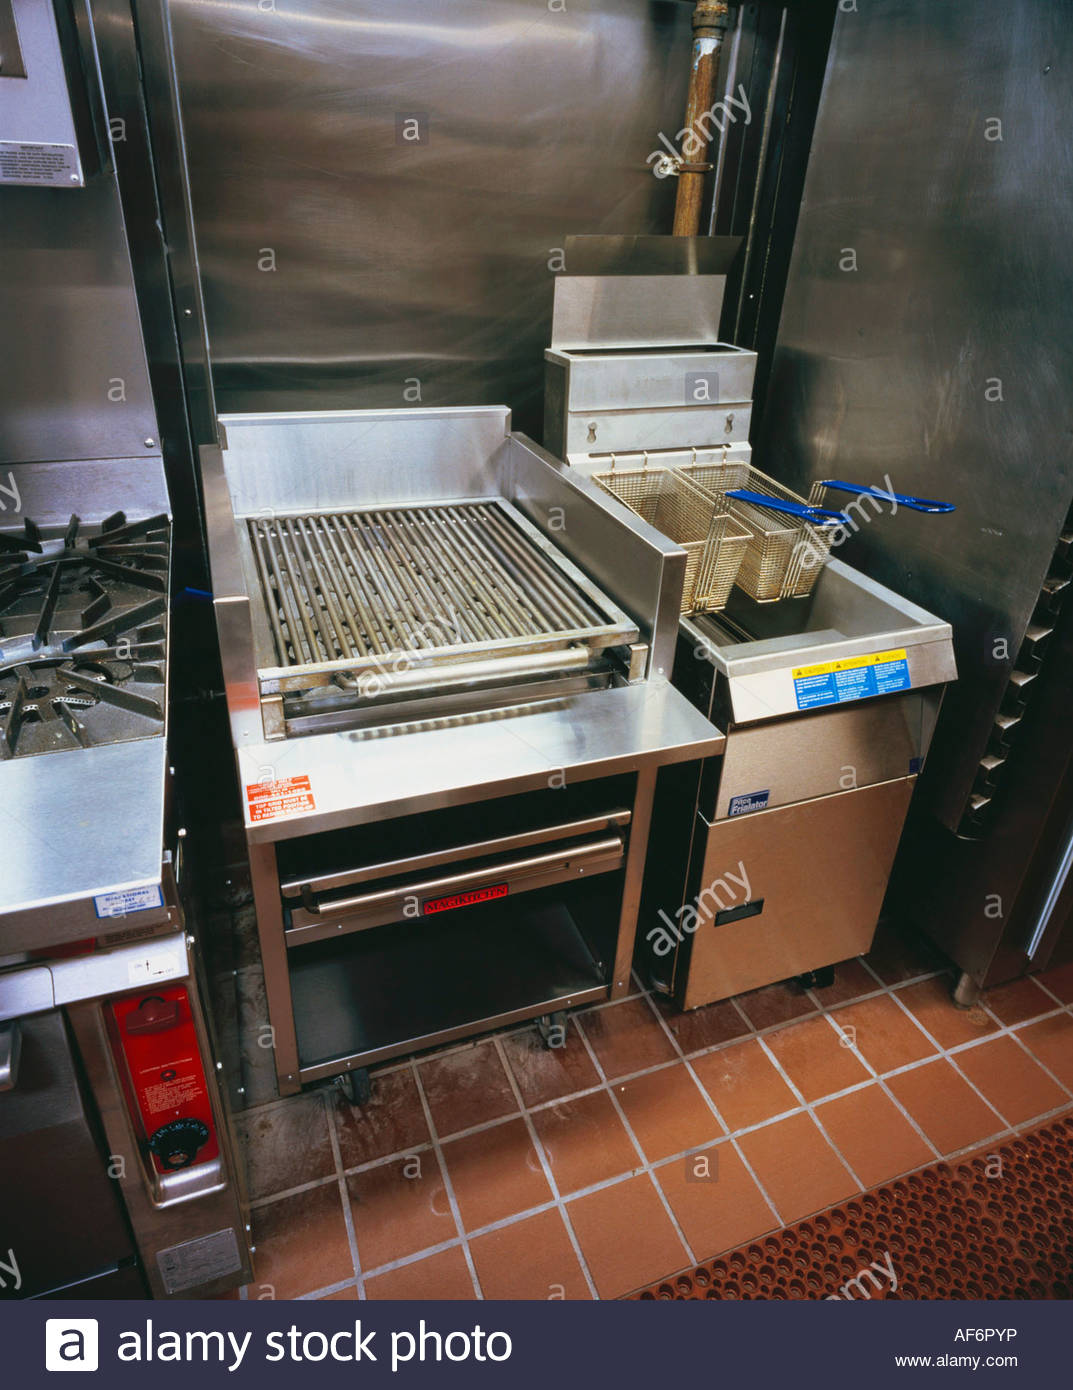 Restaurant Kitchen Grill grill and deep fryer in a restaurant kitchen stock photo, royalty